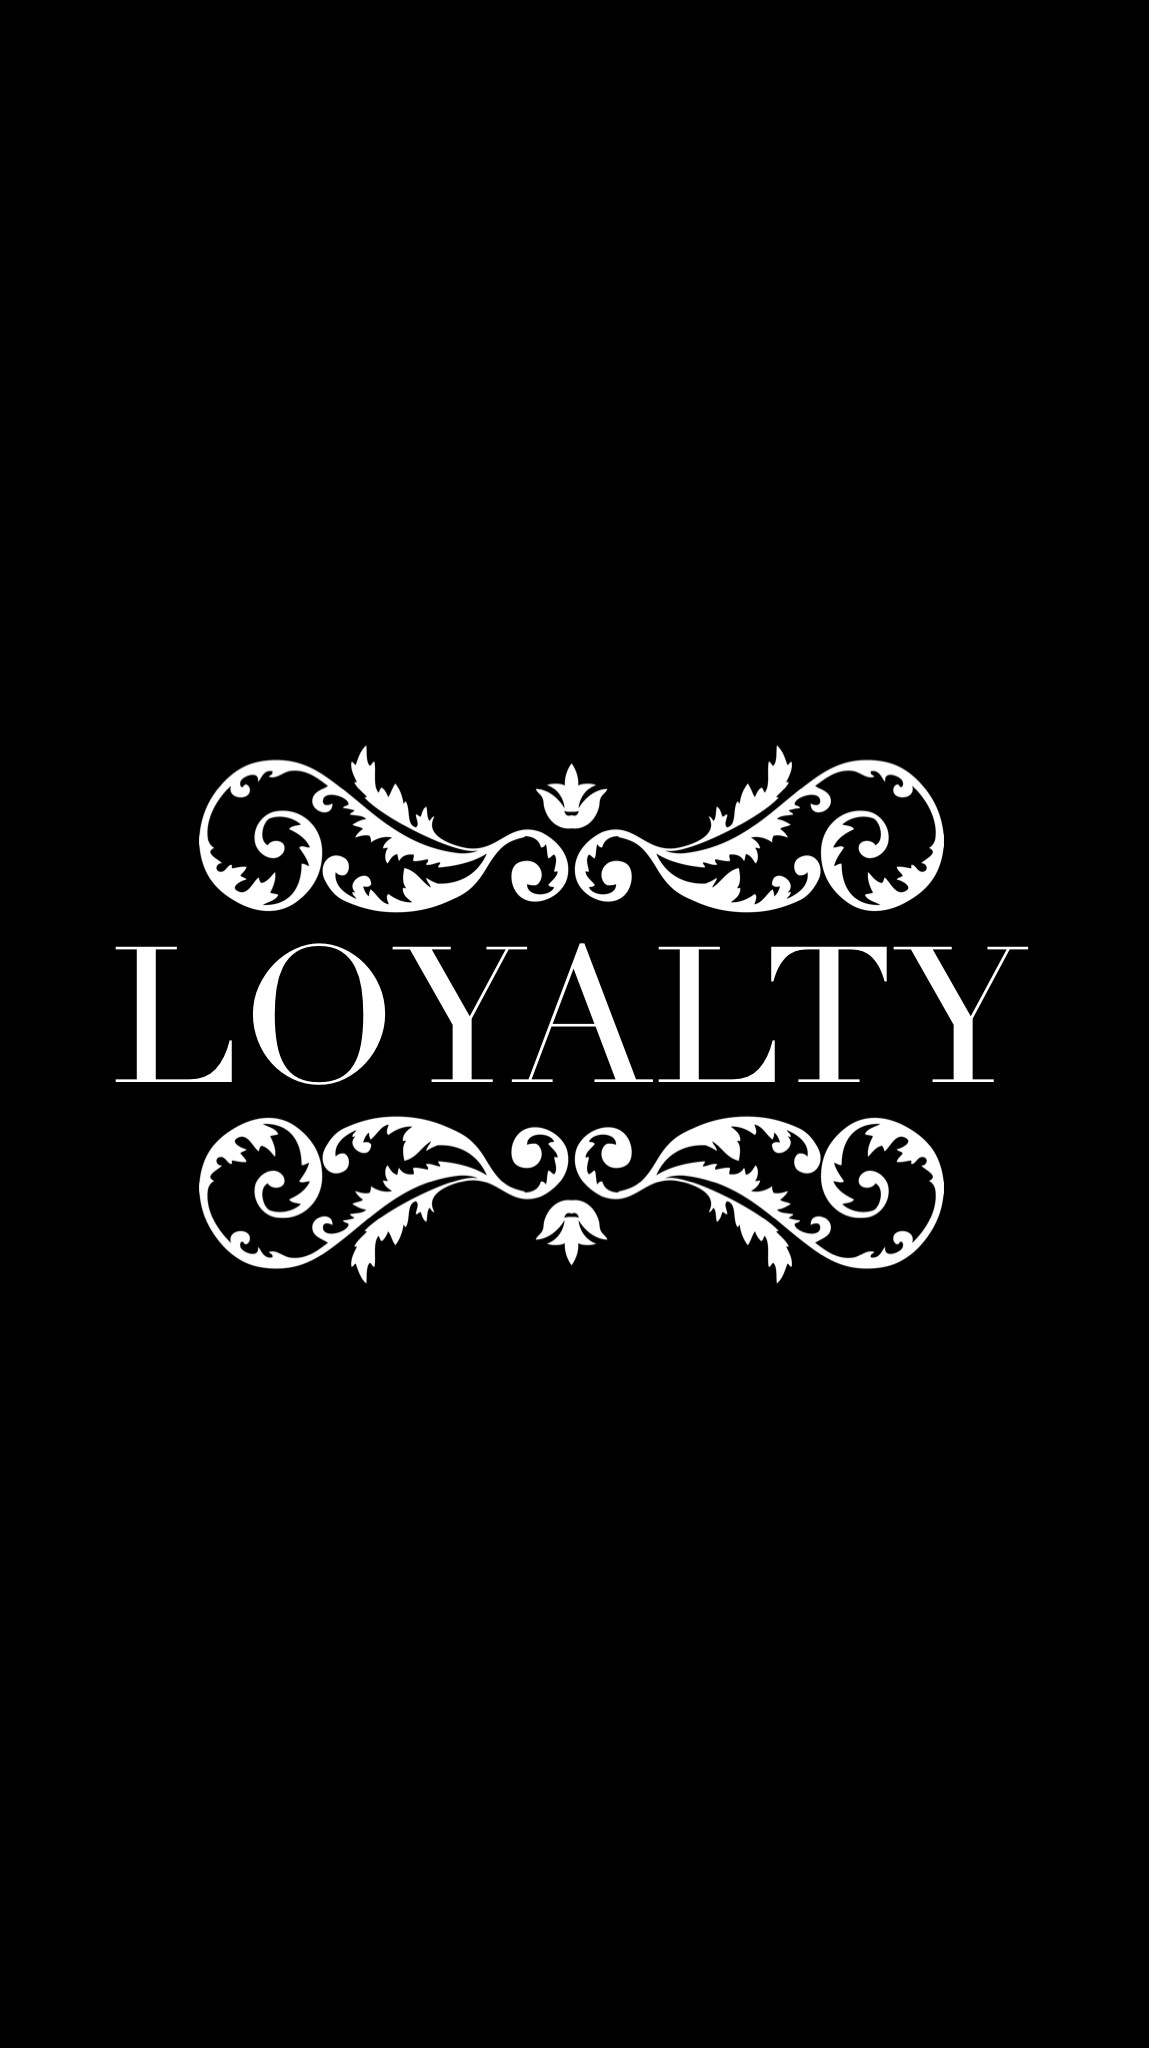 loyalty iphone|Mobile Wallpaper|Victorian edit